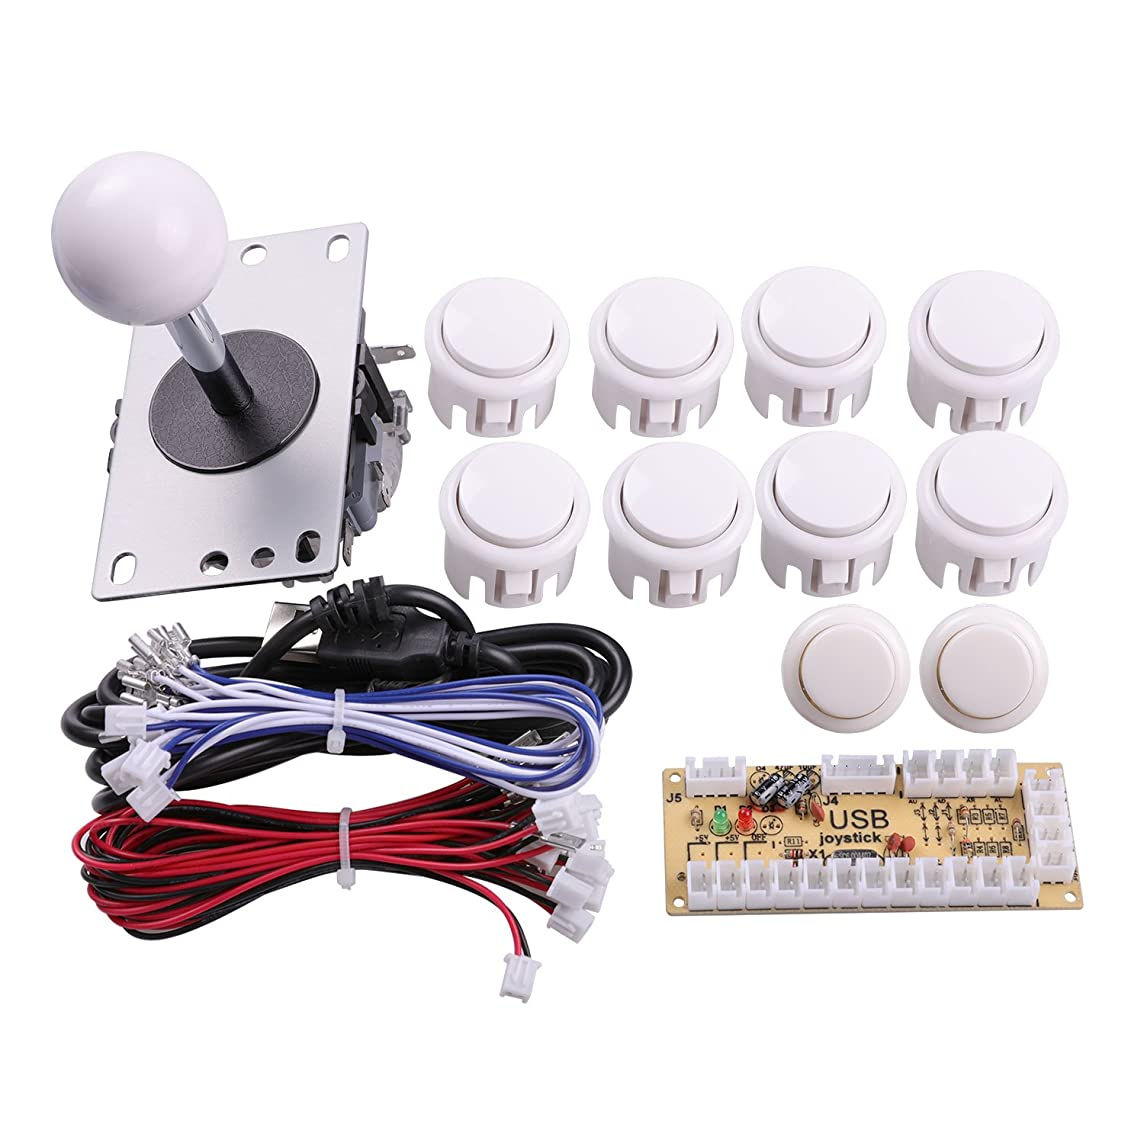 Easyget Zero Delay Arcade Game DIY Parts Kit for Raspberry Pi 1 2 3 Retropie & USB PC MAME Cabinet DIY Projects Color: White